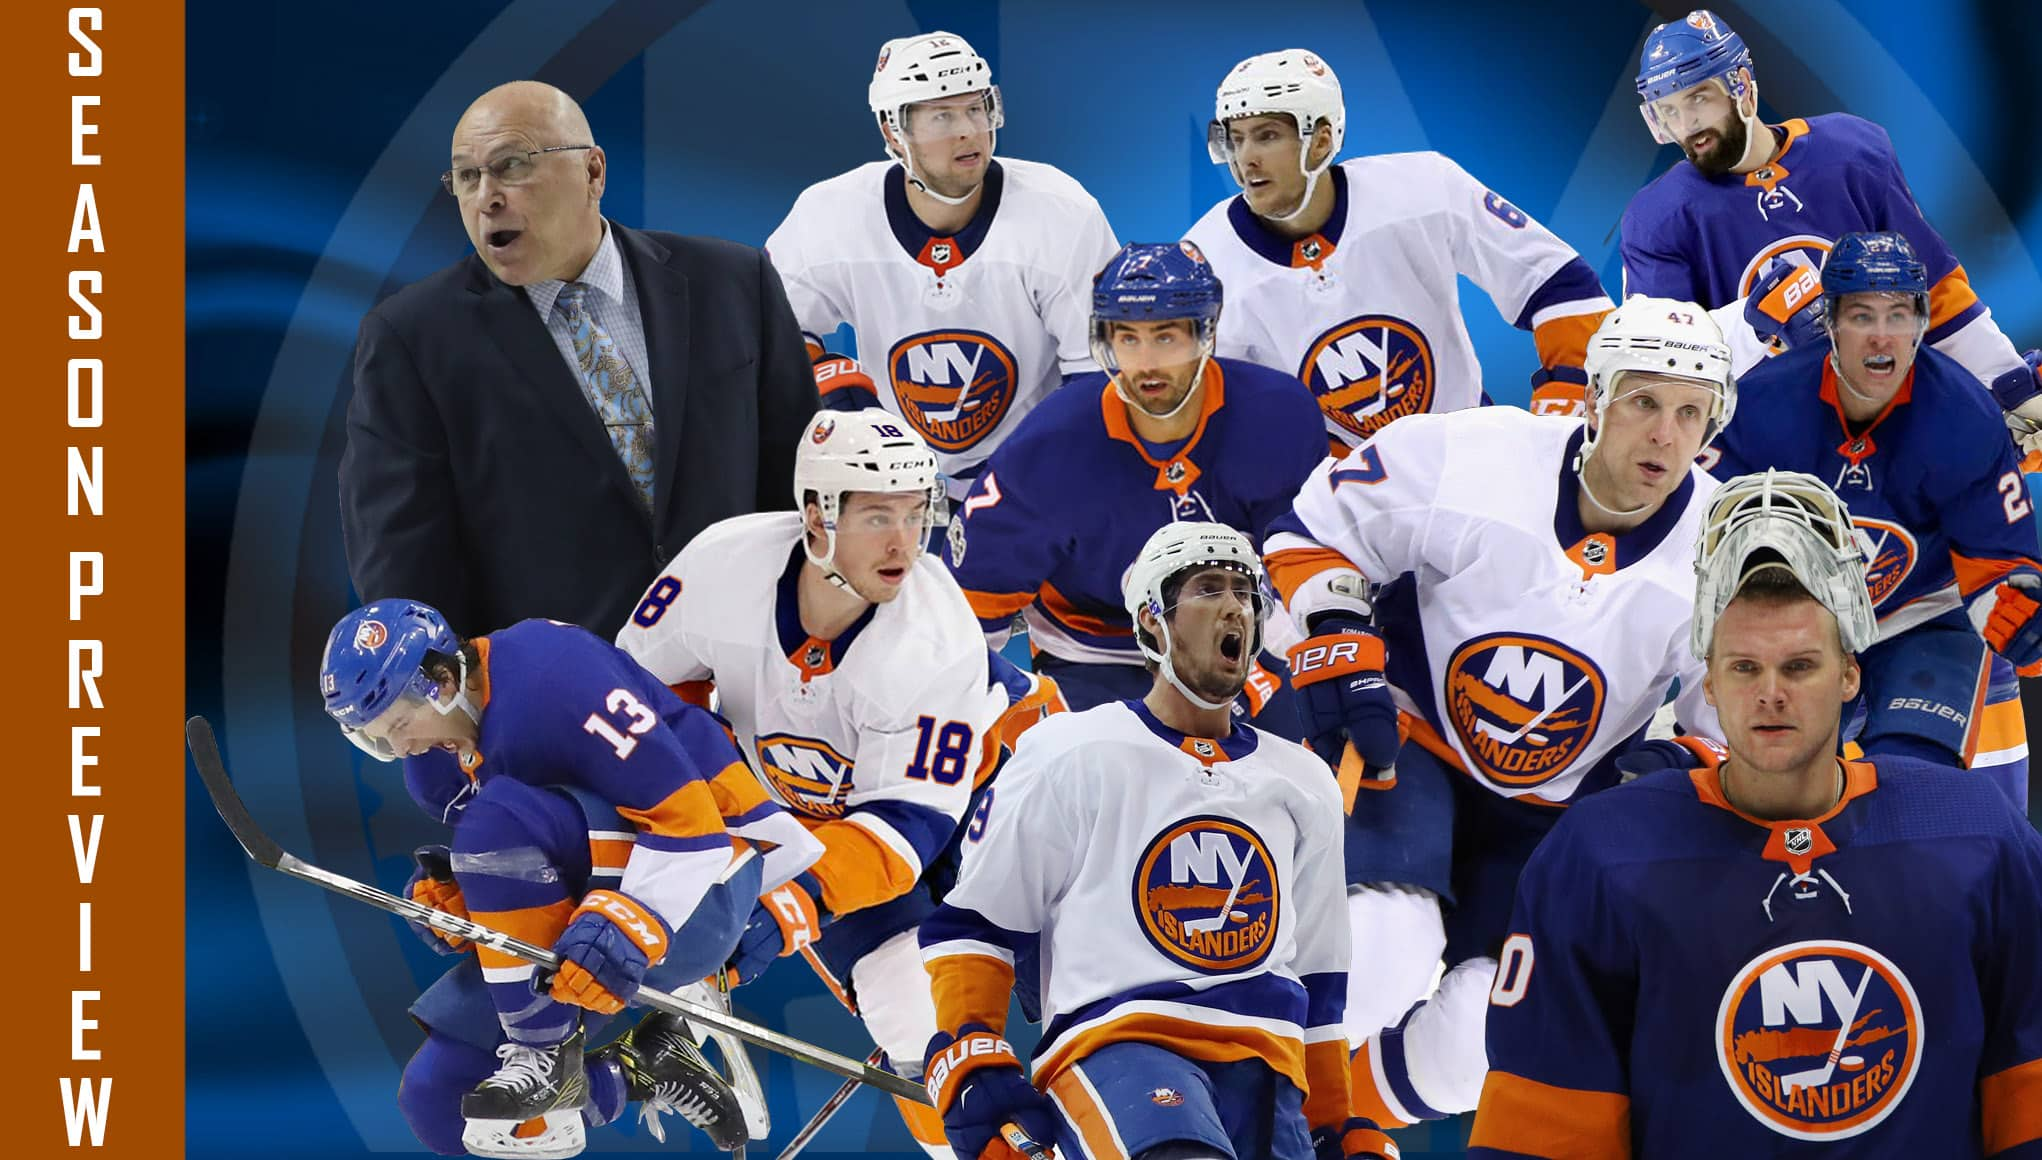 2020-2021 New York Islanders Season Tickets (Includes Tickets To All Regular Season Home Games) at Barclays Center